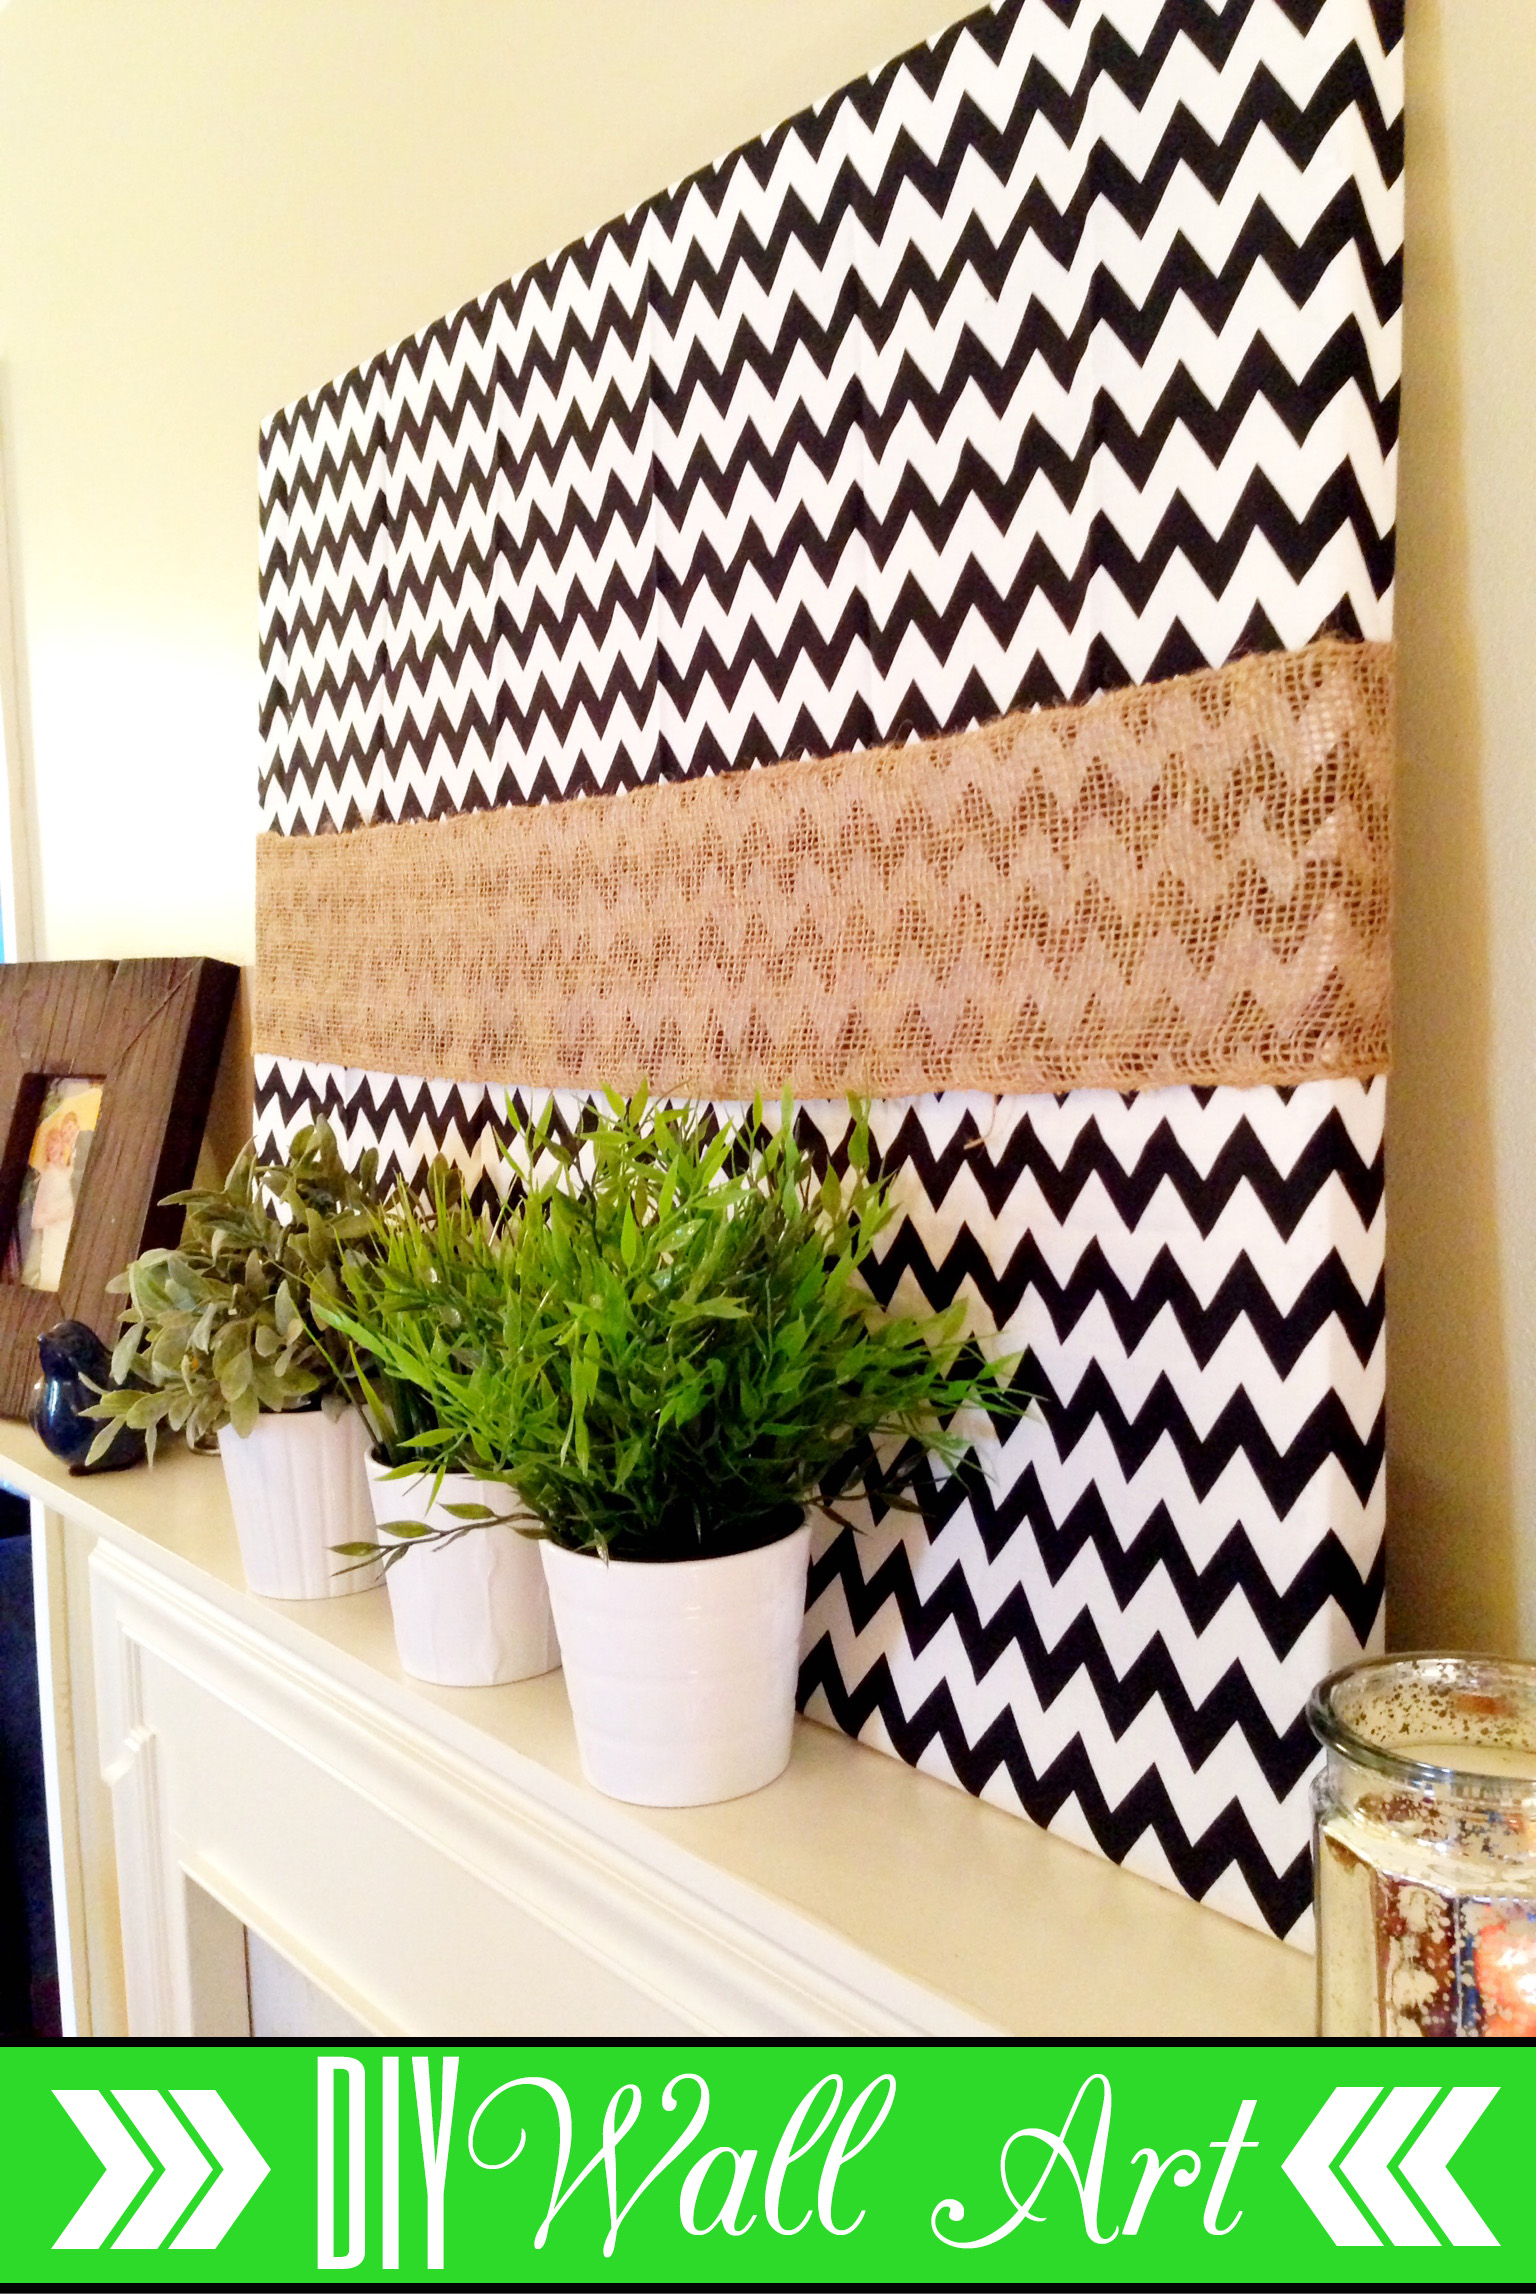 Diy Spring Wall Decor : Diy wall art my spring mantel t h e r f u b i s